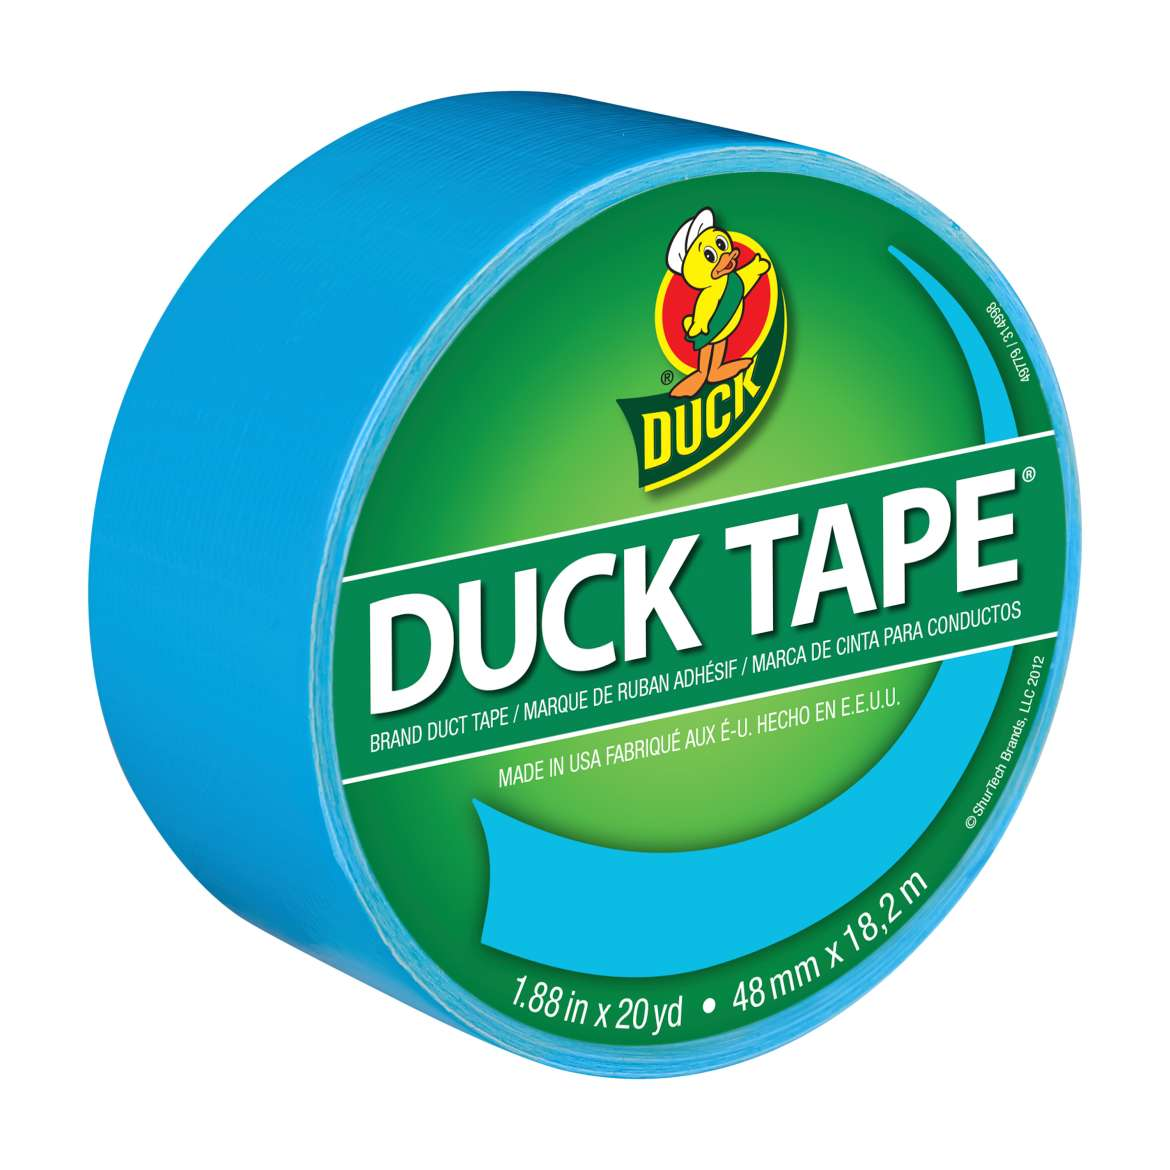 Color Duck Tape Brand Duct Tape - Electric Blue, 1.88 in. x 20 yd.